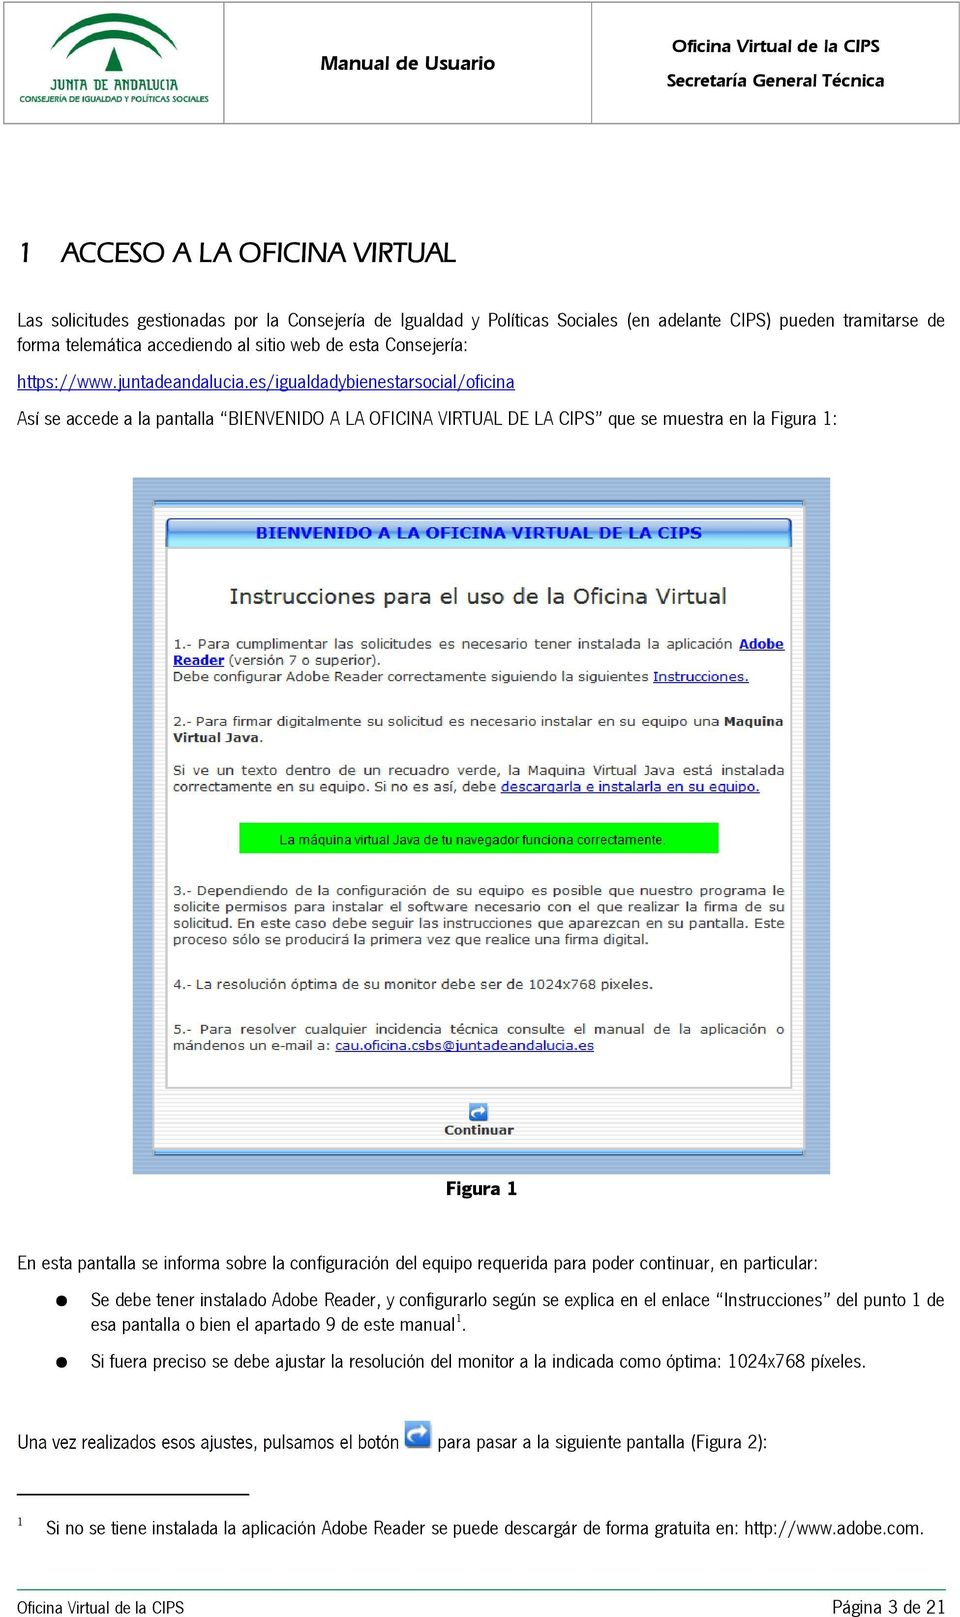 Oficina virtual de la cips pdf for Oficina virtual correos